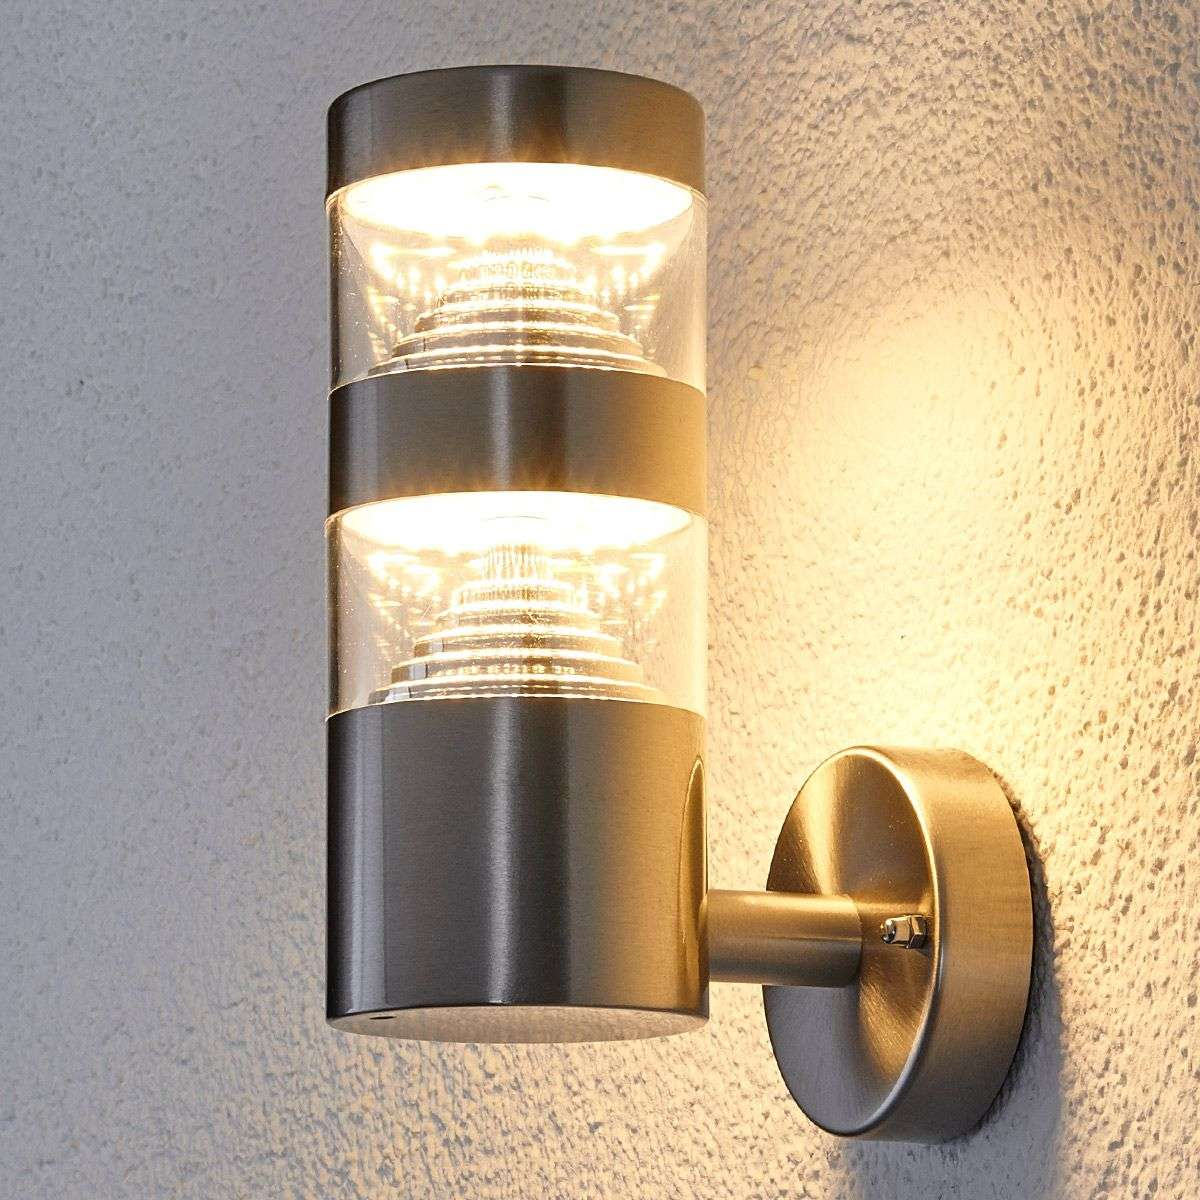 Stainless steel led outdoor wall light lanea lights stainless steel led outdoor wall light lanea 9988005 31 aloadofball Image collections